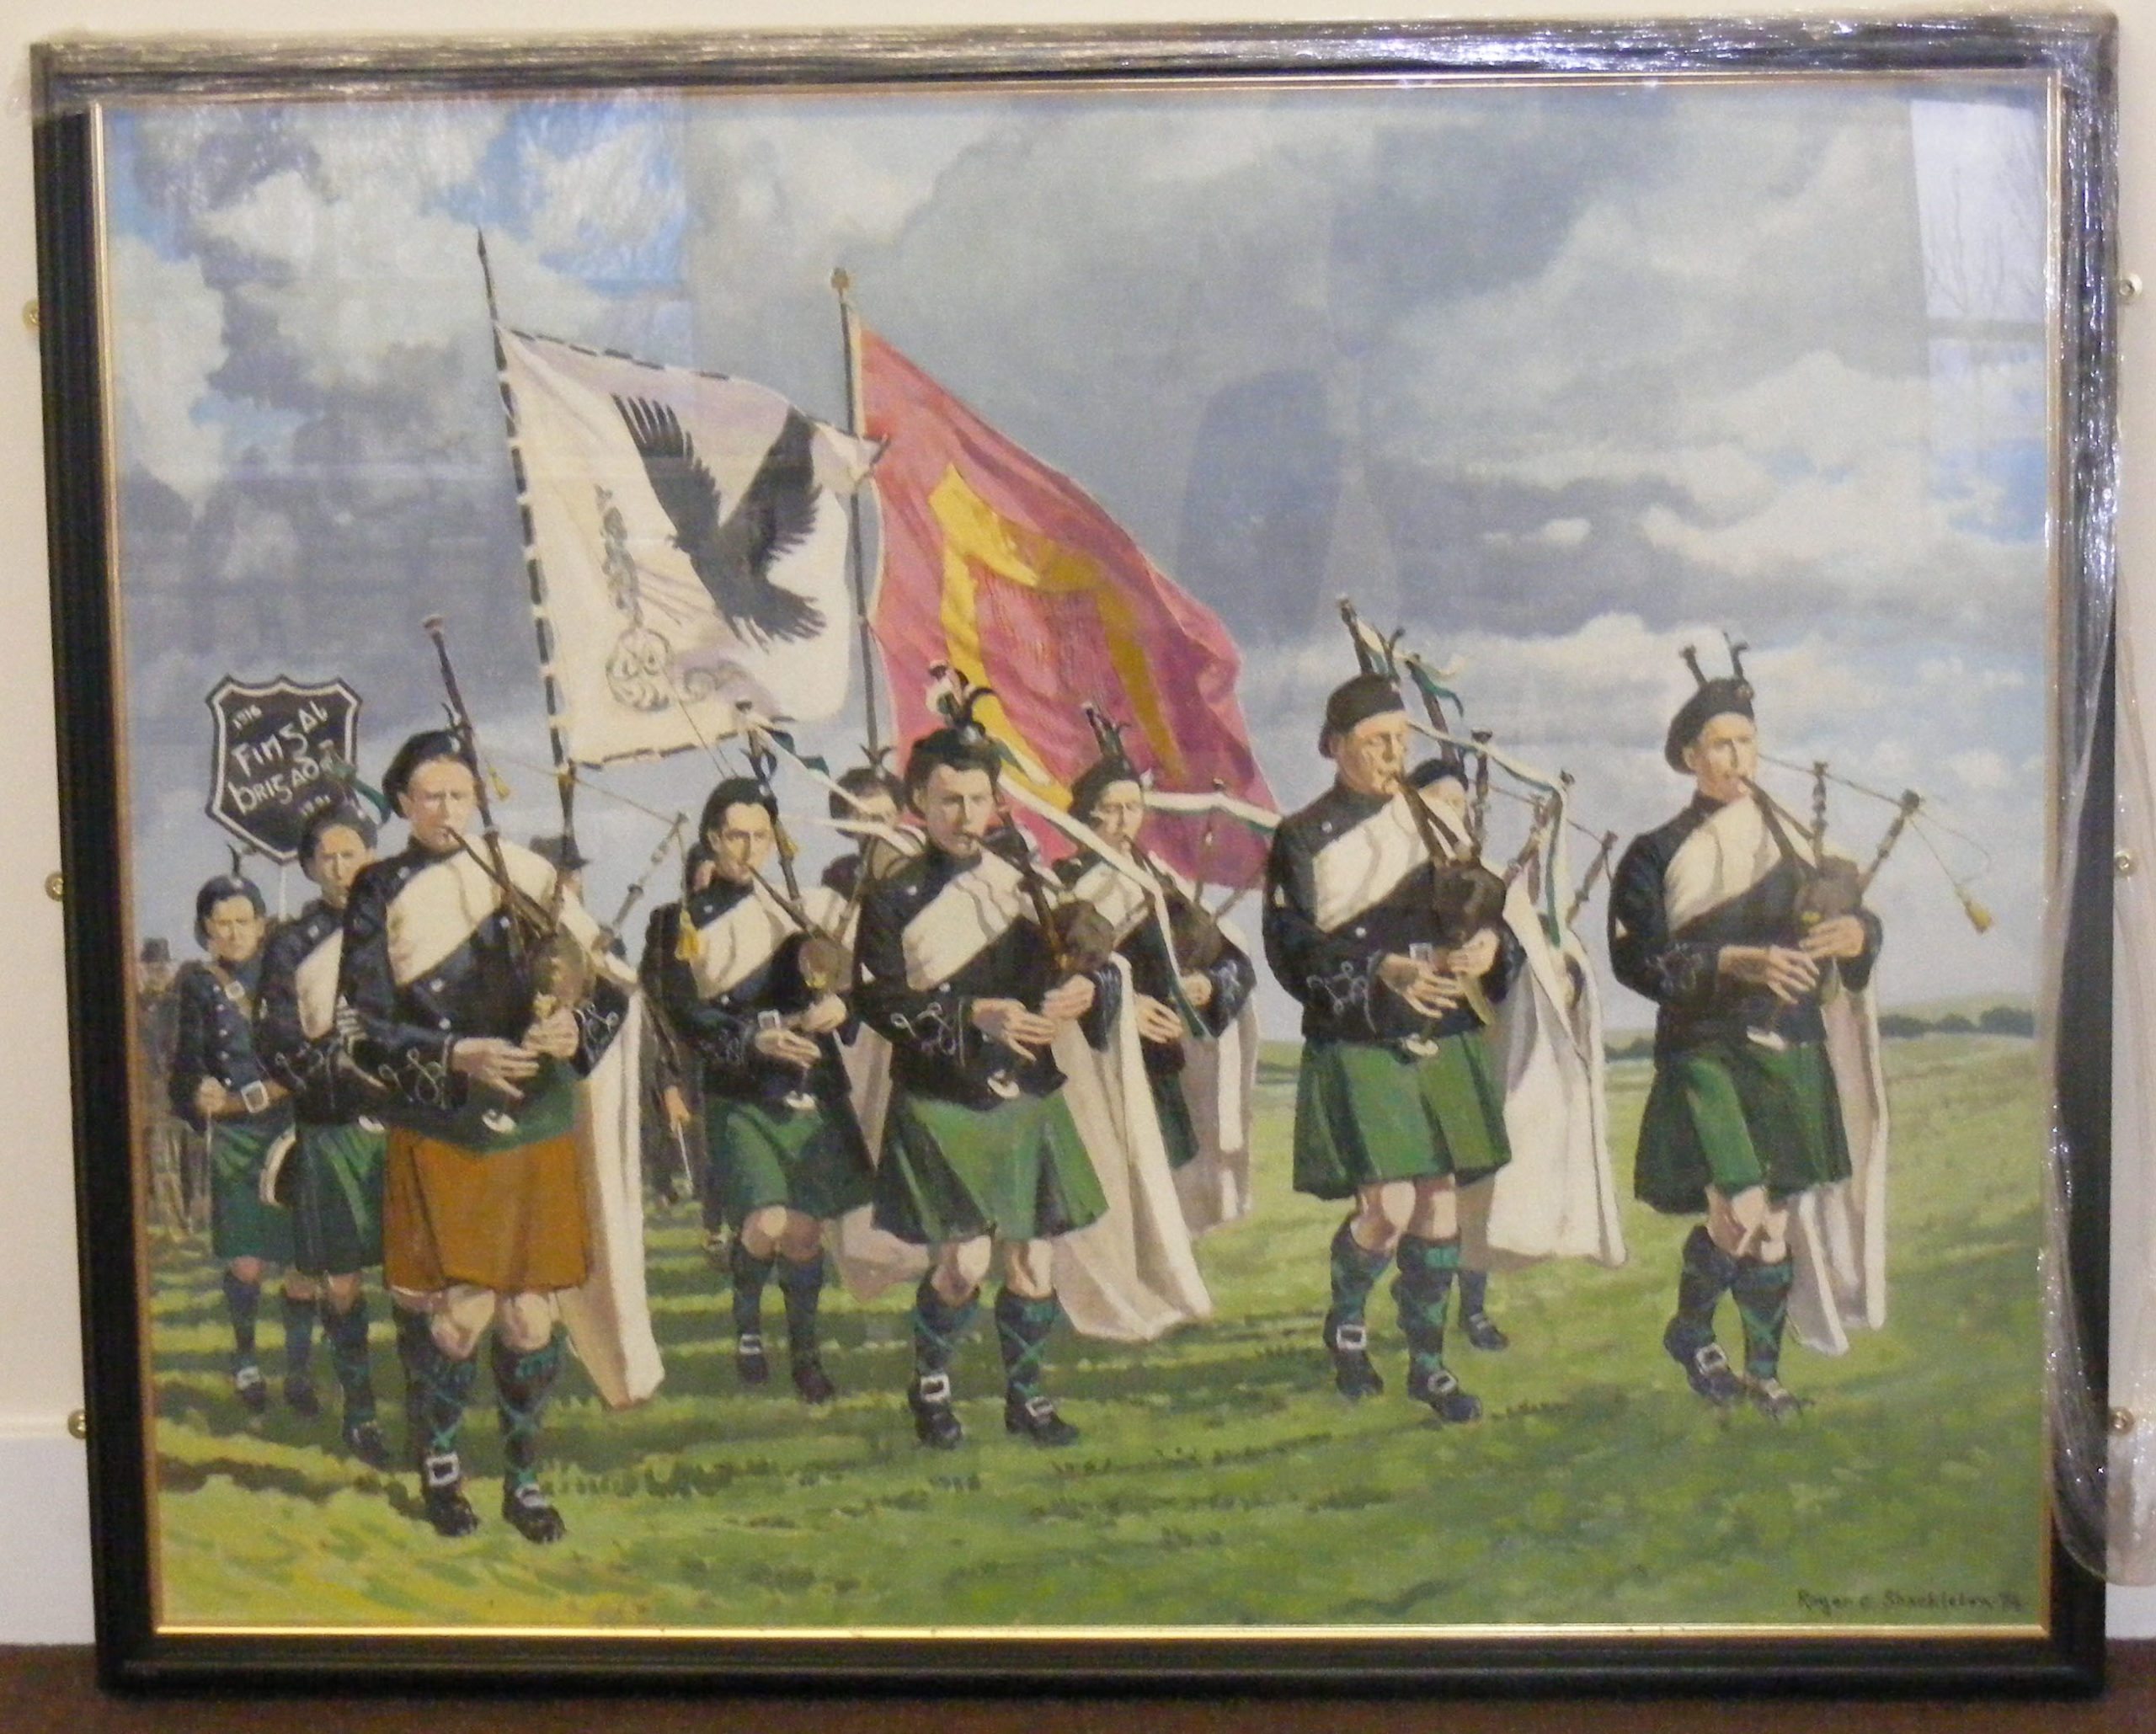 Background to the Painting of Black Raven Pipe Band